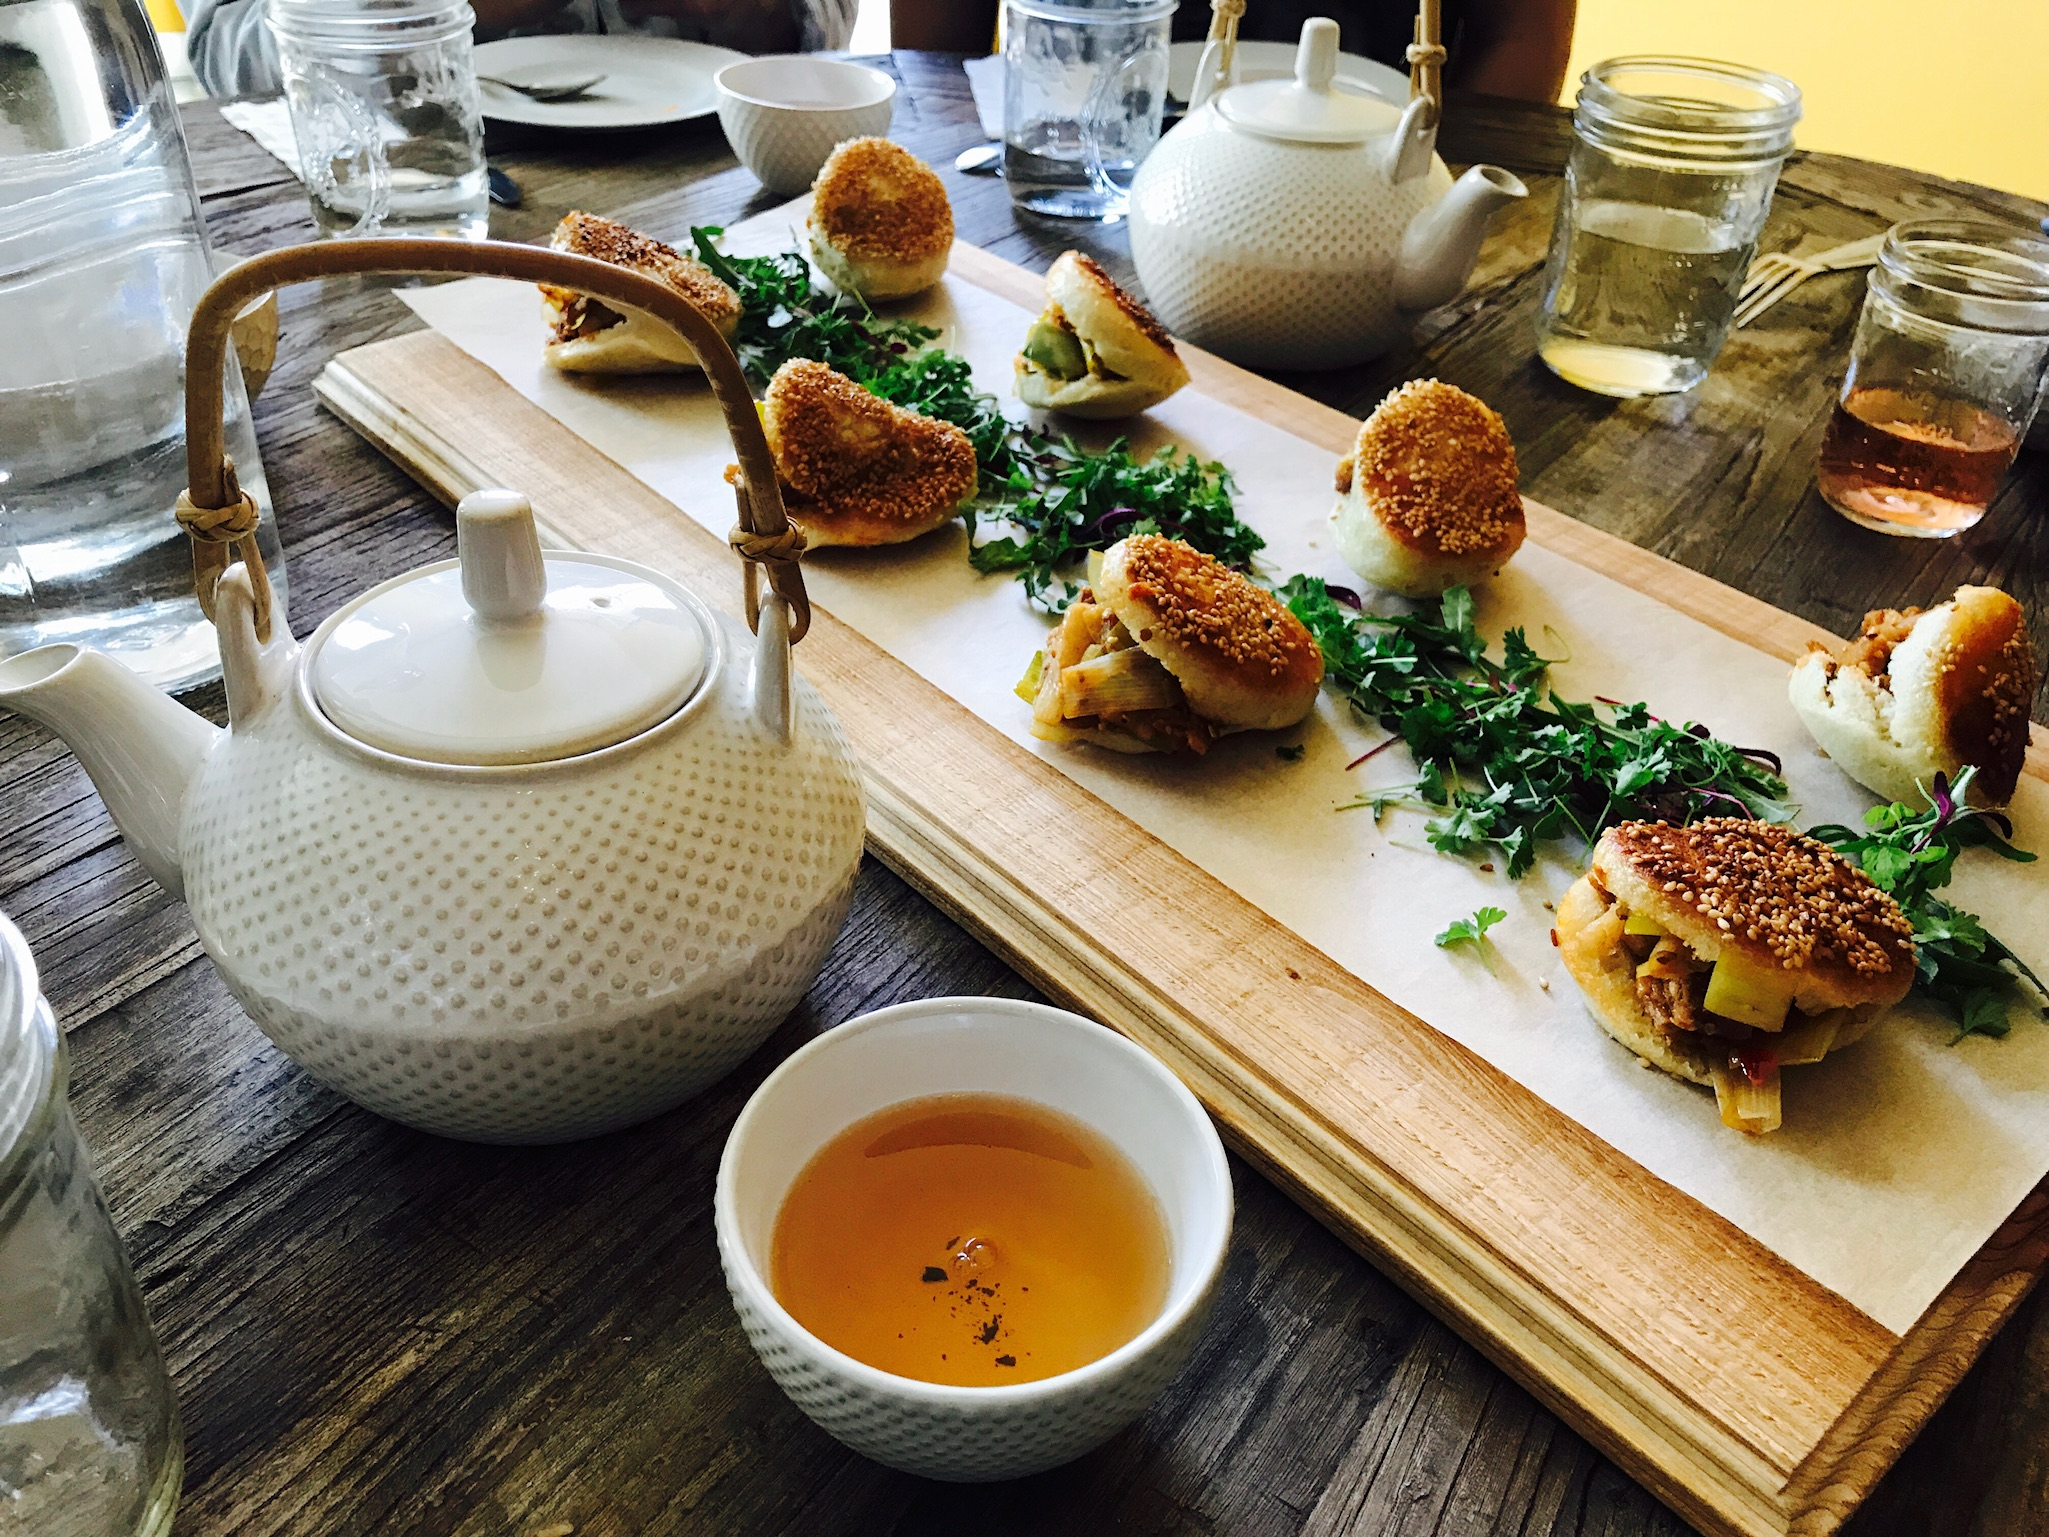 Global take on high tea brunch - Learn about the history and tasting notes of regional teas from around the world as tea enthusiast chefs present a six-course tasting menu featuring a new global take on